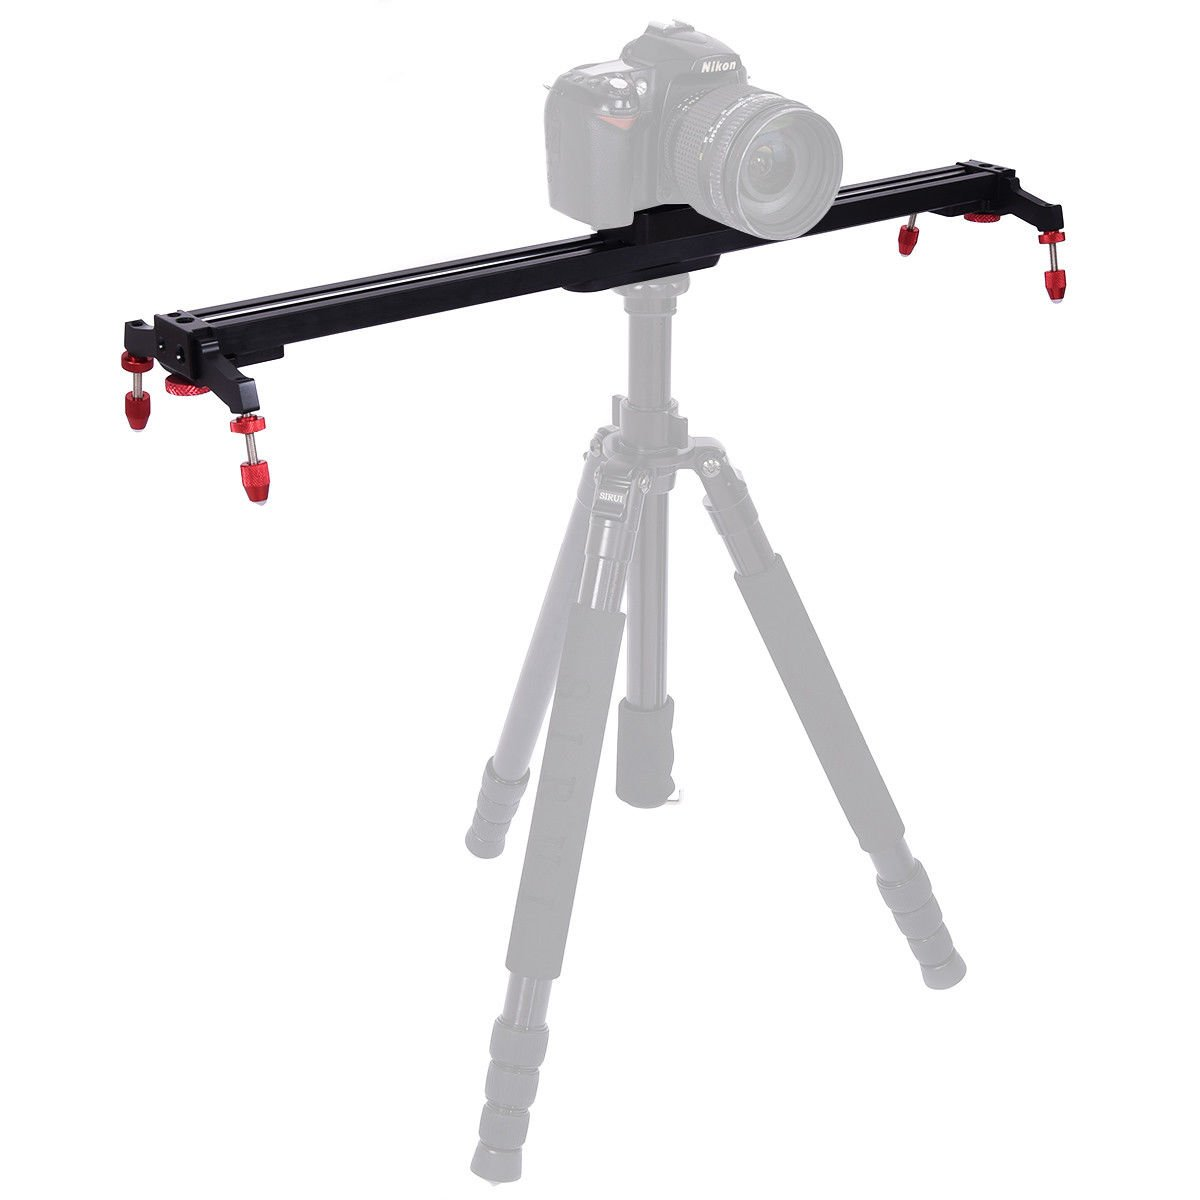 """Safstar 24"""" Aluminum Alloy Camera Track Slider Video Stabilizer Rail with 4 Ball-Bearings for DSLR Camera DV Video Camcorder Film Photography"""